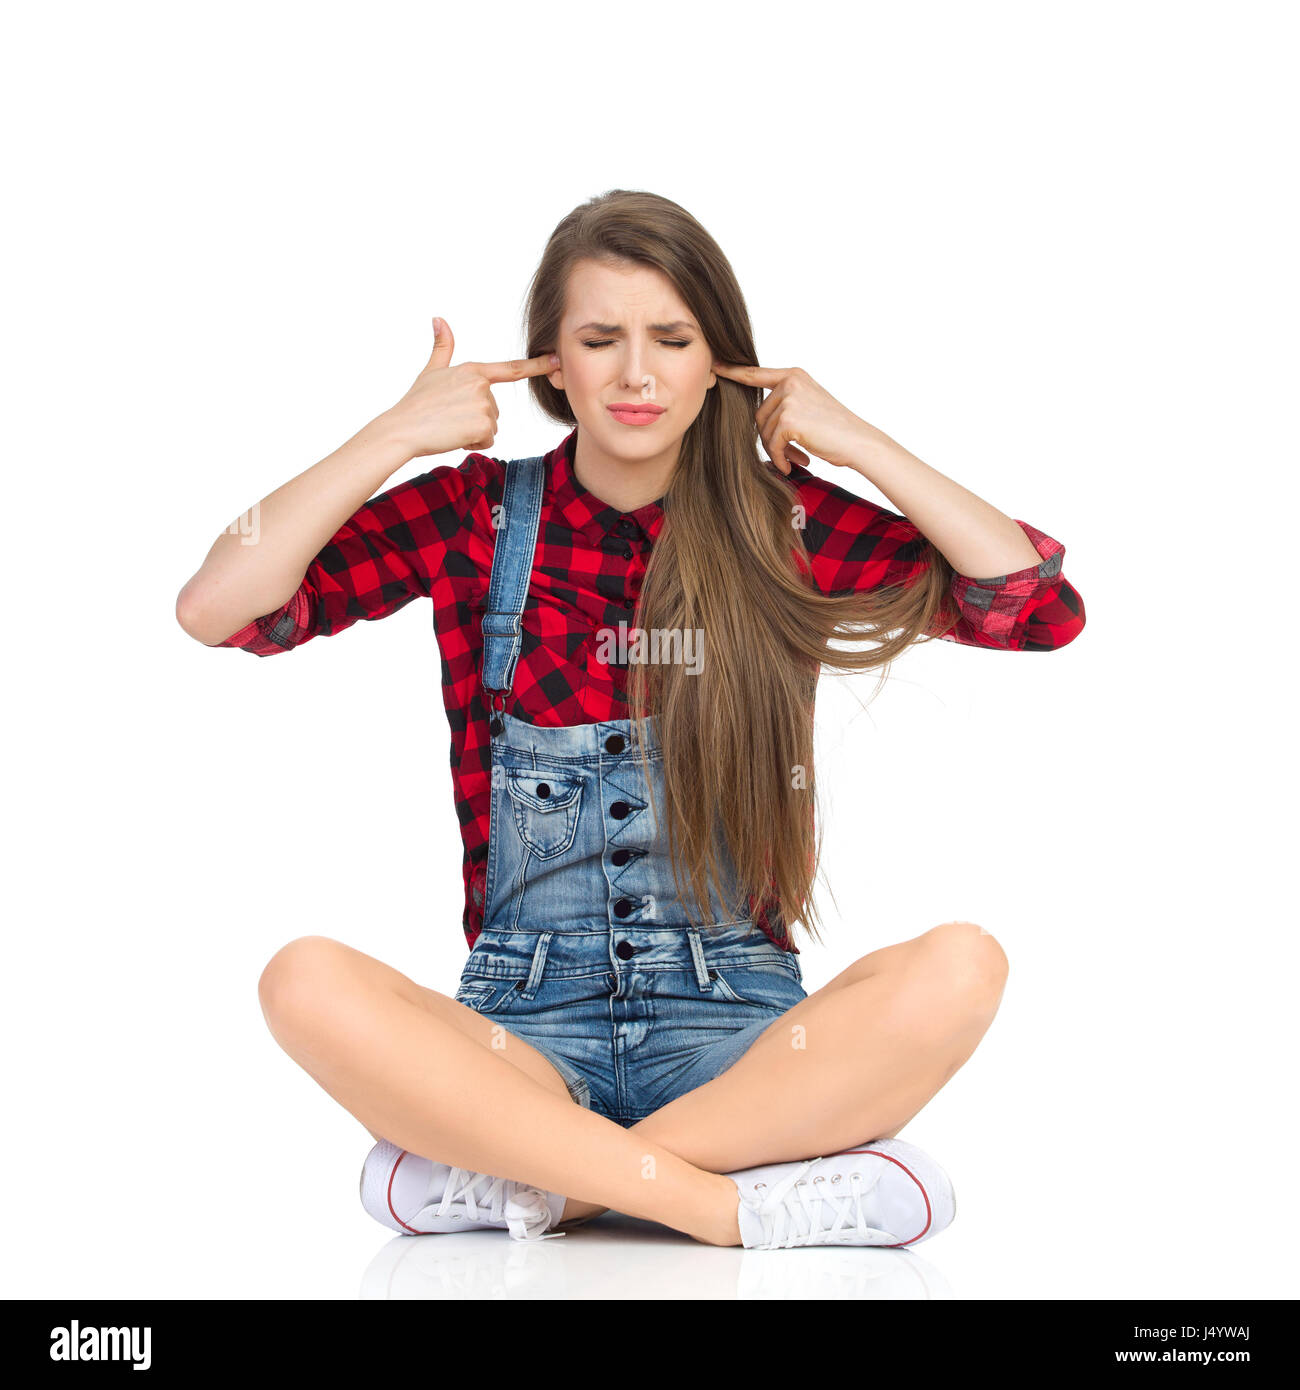 Disgusted young woman in red lumberjack shirt, jeans shorts and white sneakers sitting on a floor with legs crossed, - Stock Image